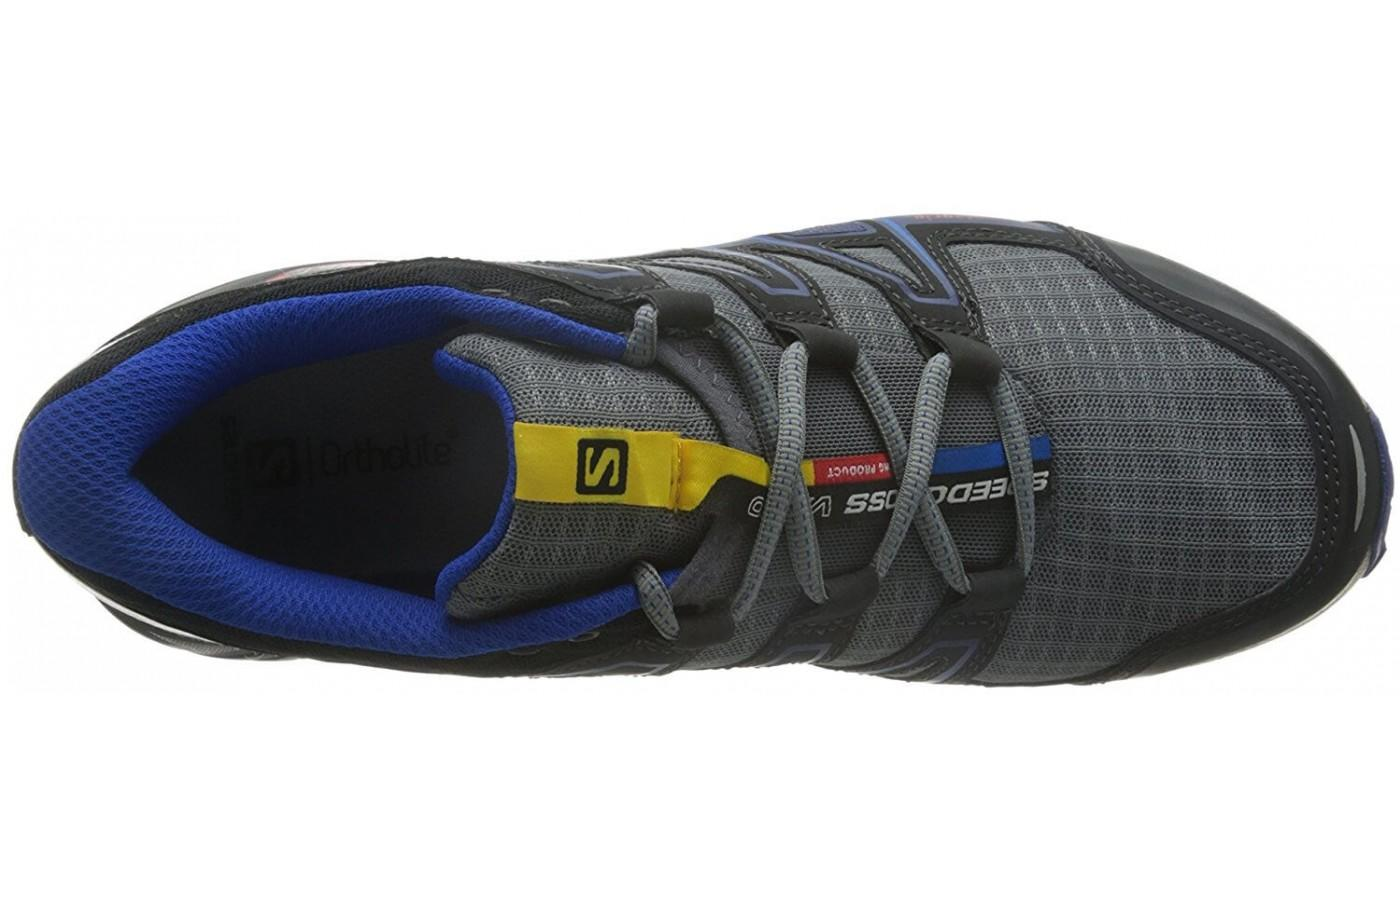 The upper of this shoe is breathable and lightweight.